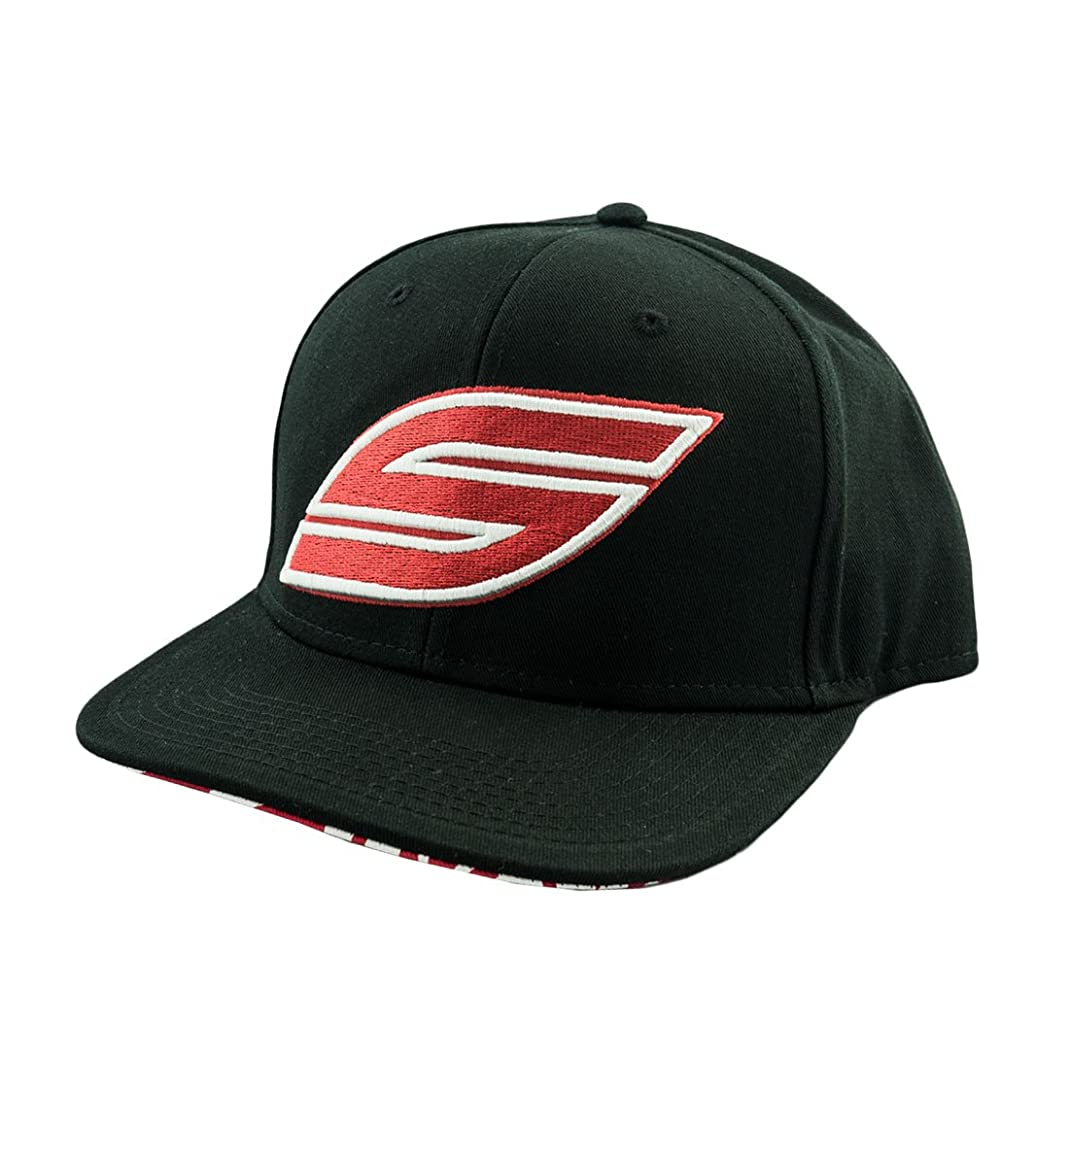 Social Paintball Snapback Hat/Cap, Black, Red S